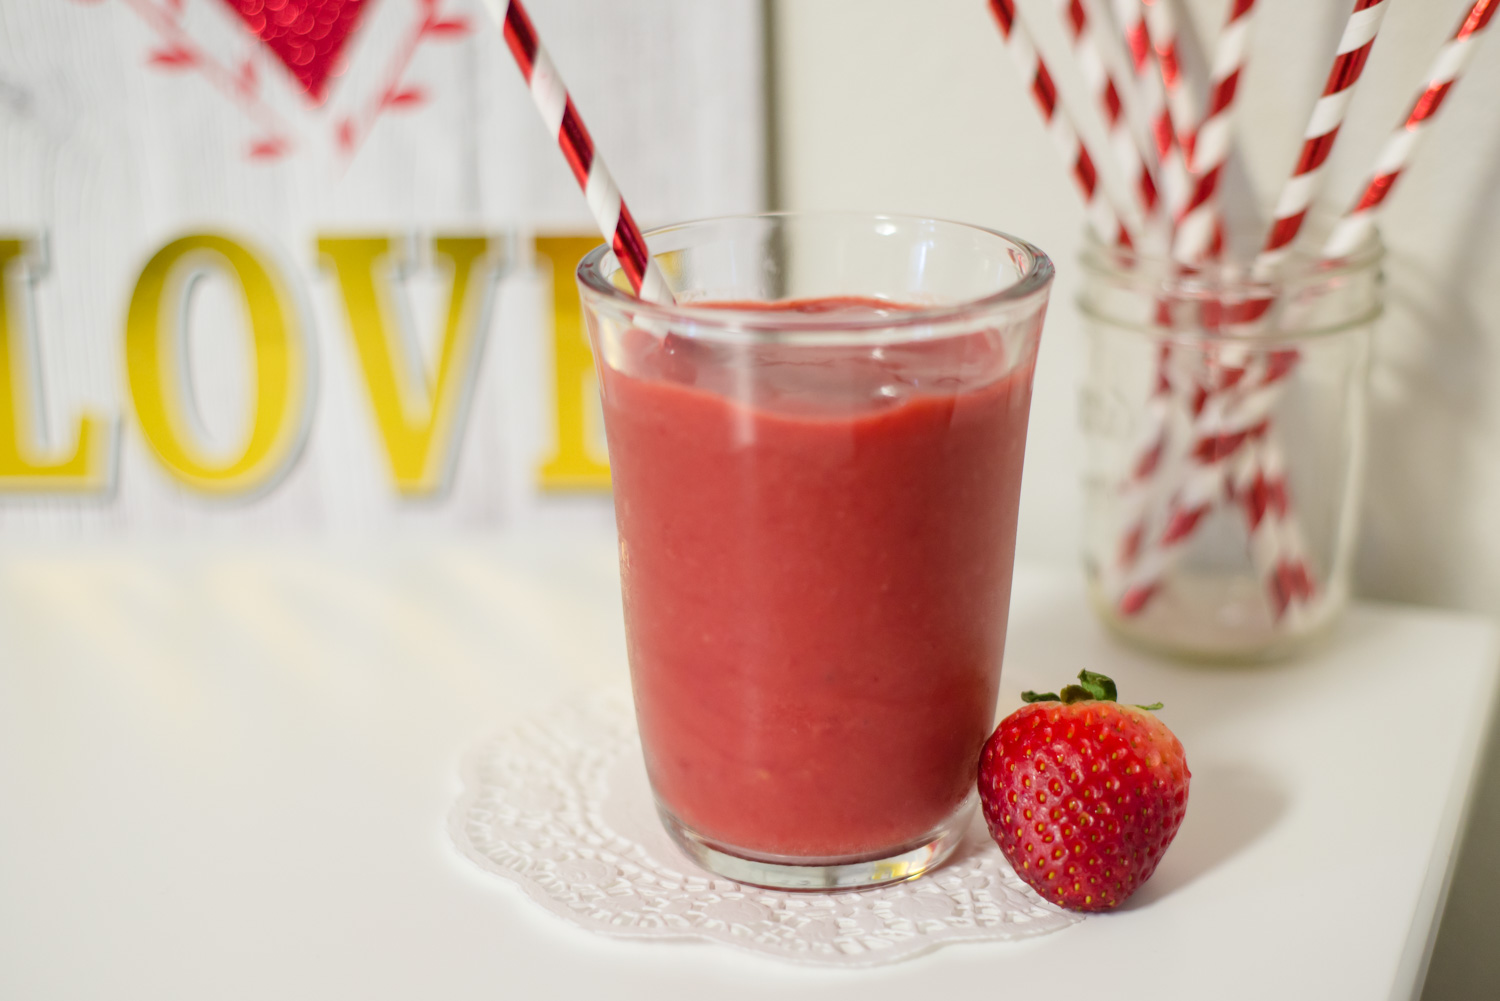 4 Ingredient Strawberry Mango Slushies